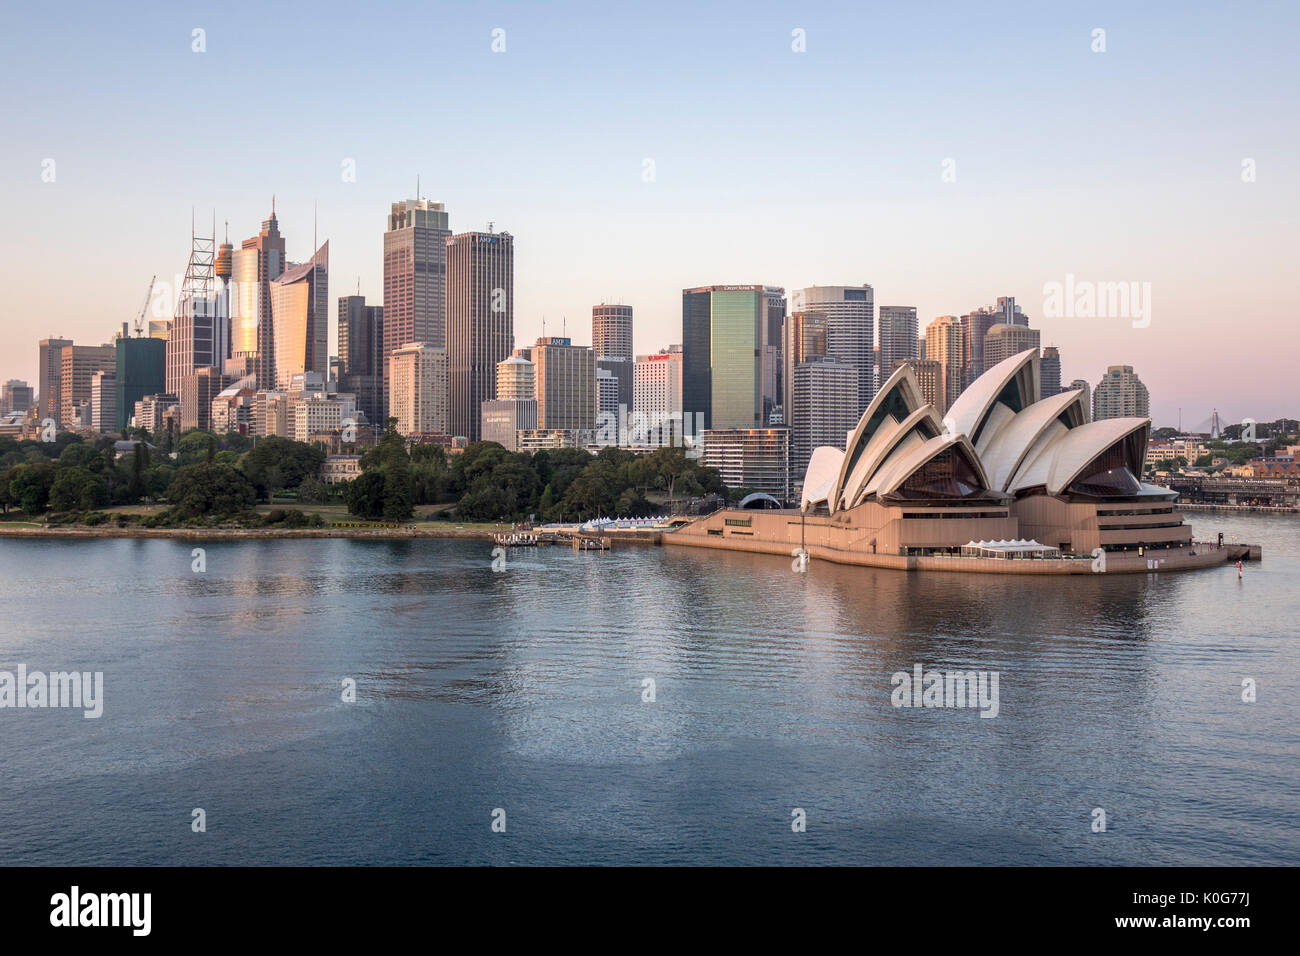 Sydney Skyline Early Morning Dawn Sunrise With Sydney Opera House And Harbour Sydney Australia - Stock Image